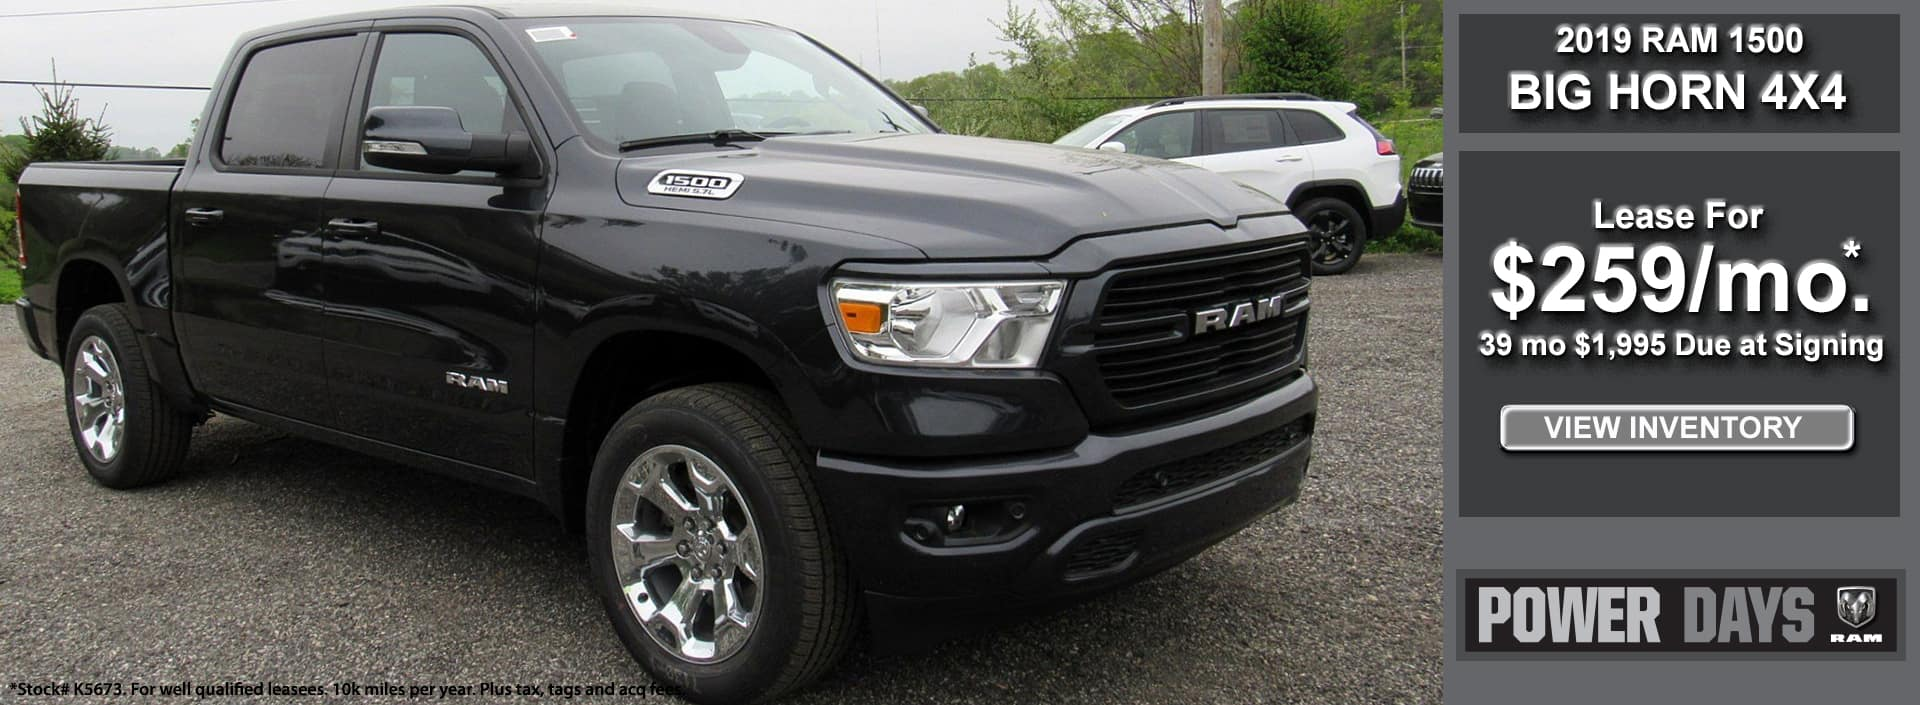 RAM Big Horn Lease October 2019